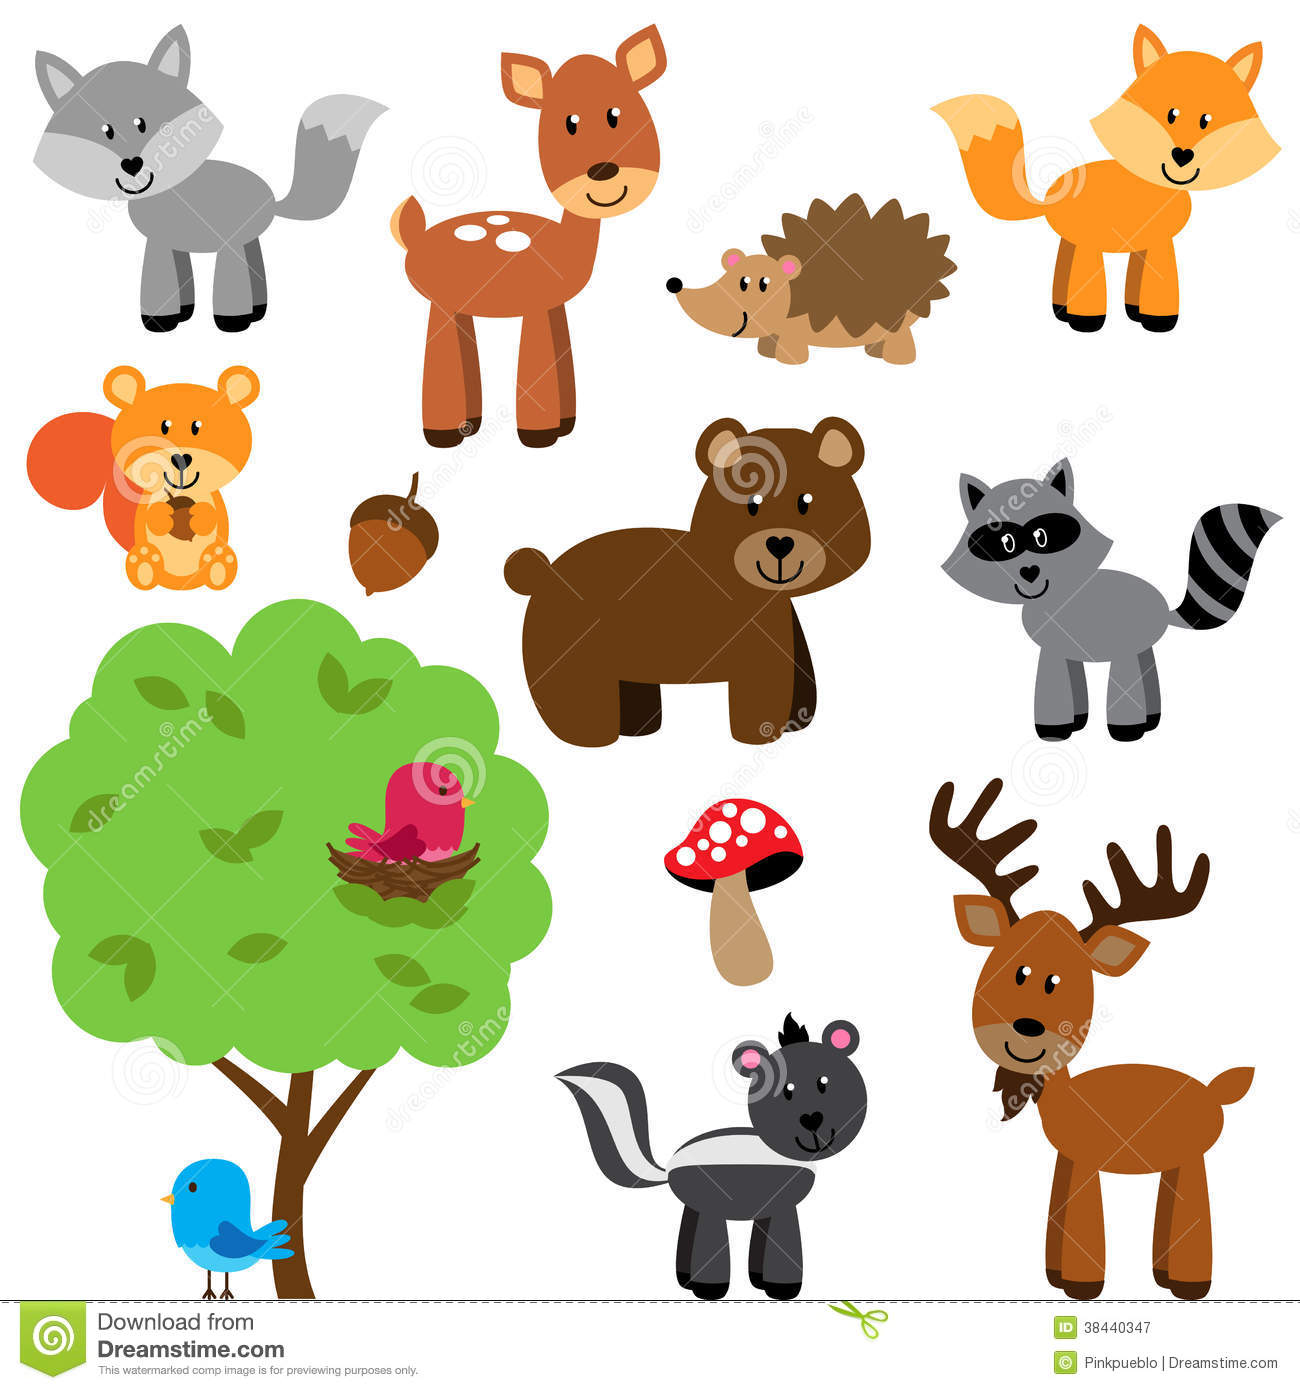 Fall Deer And Farm Scene Wallpaper Border Vector Set Of Cute Woodland And Forest Animals Cartoon